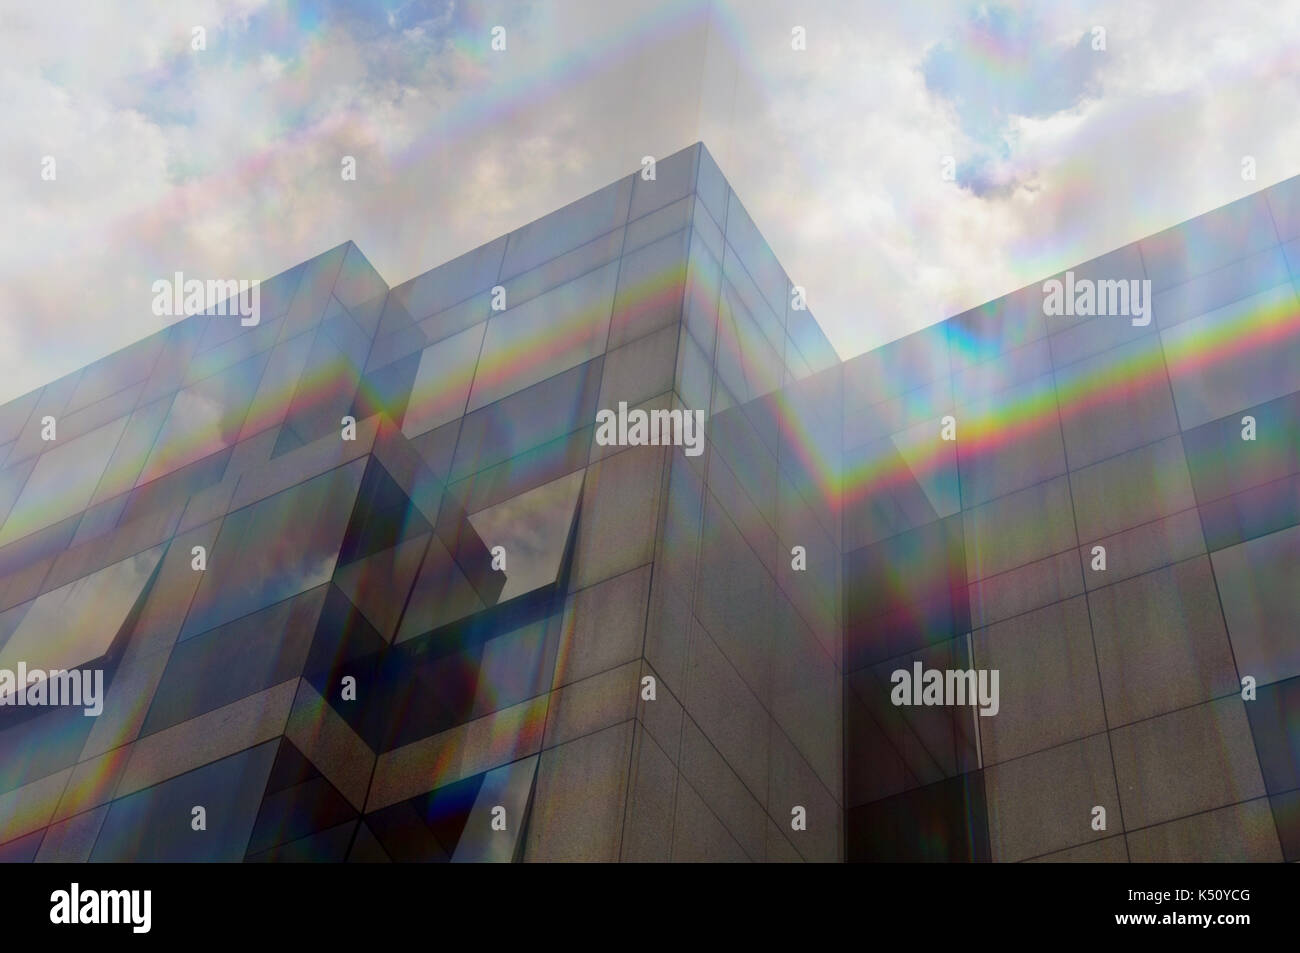 Glass building windows facade motion blur through prism. Abstract spectrum colors reflection. - Stock Image